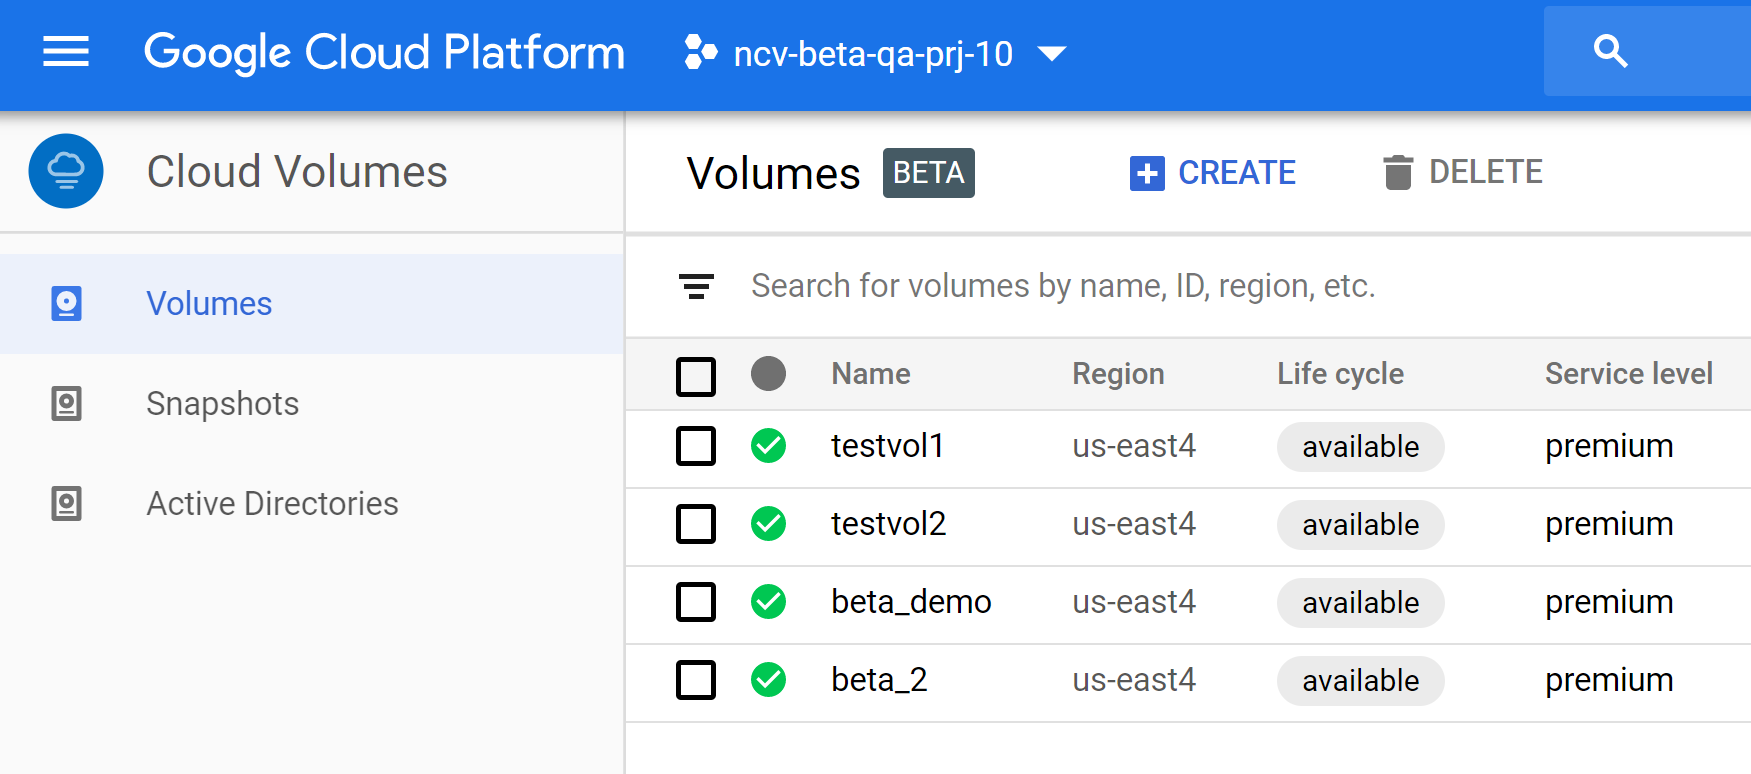 Cloud Volumes in the GCP console